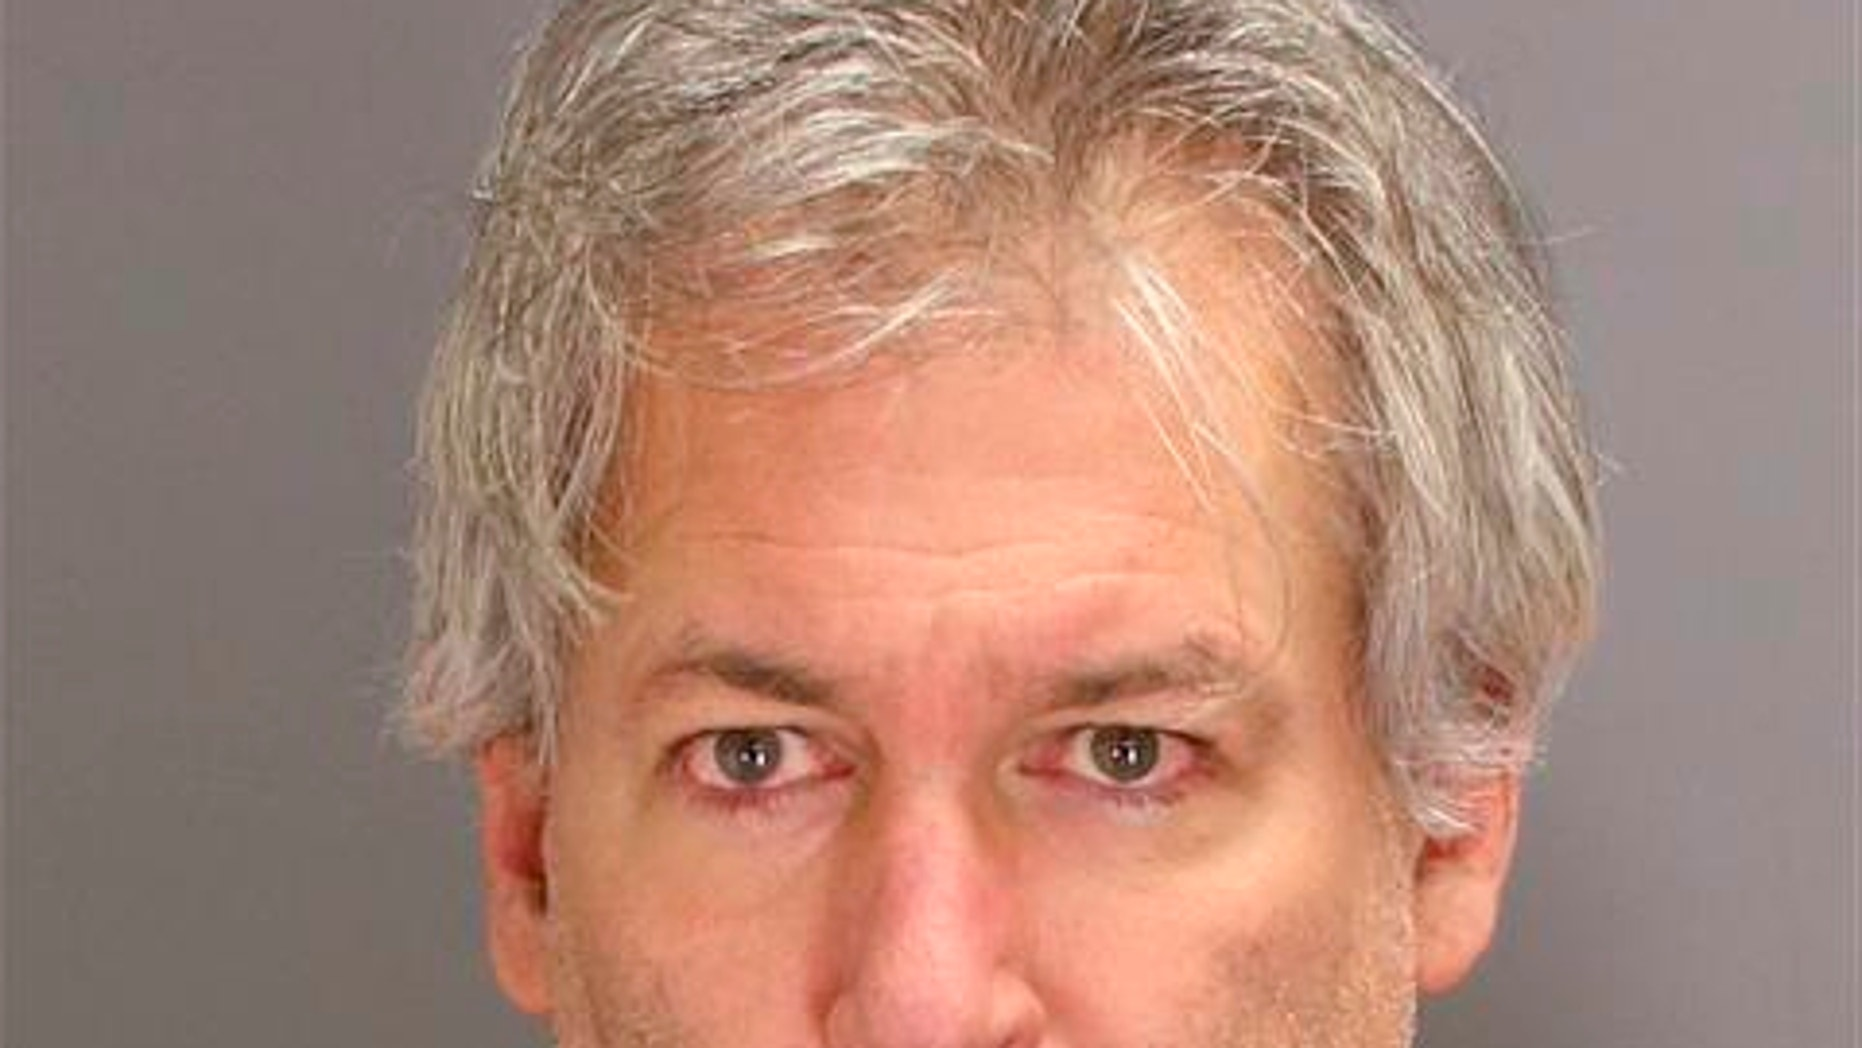 "FILE - This undated file photo released by the Oakland County Sheriff's Department shows Jeffrey Maurer. The 54-year-old suburban Detroit man has been sentenced to life in prison for beating his 87-year-old father and 85-year-old mother to death with hammers. Oakland County Circuit Judge Colleen O'Brien told Maurer on Tuesday, Sept. 1, 2015, that his actions were ""reprehensible and a shock to the community."" (Oakland County Sheriffs Department via AP, File)"